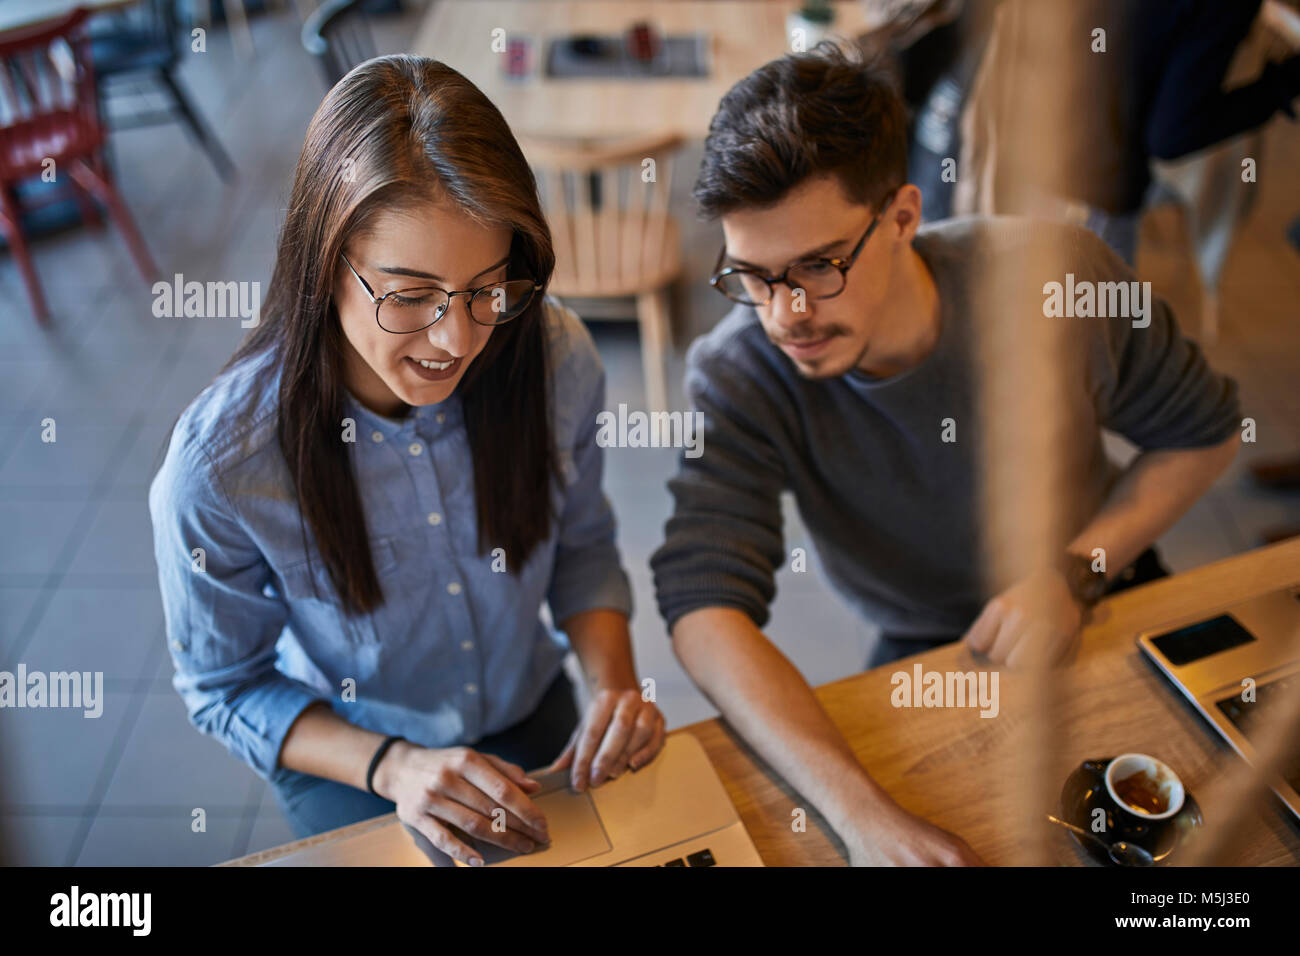 Young woman and man in a cafe with laptop - Stock Image